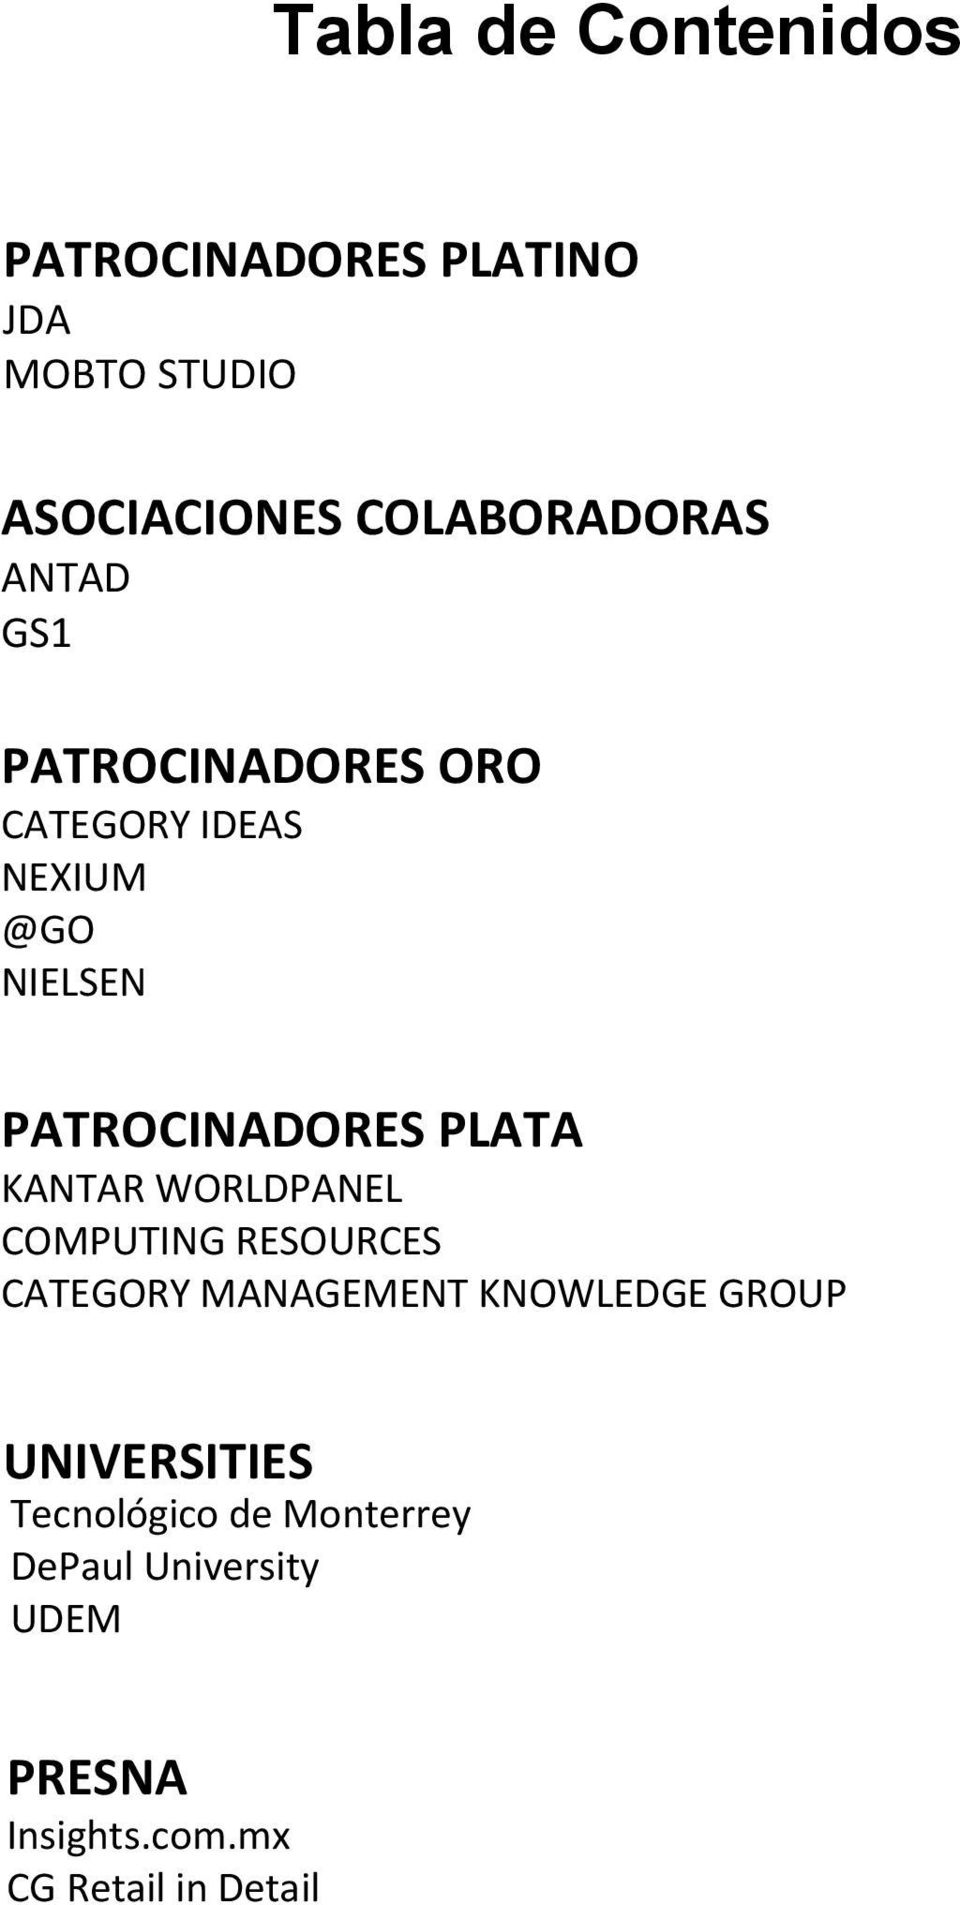 KANTAR WORLDPANEL COMPUTING RESOURCES CATEGORY MANAGEMENT KNOWLEDGE GROUP UNIVERSITIES